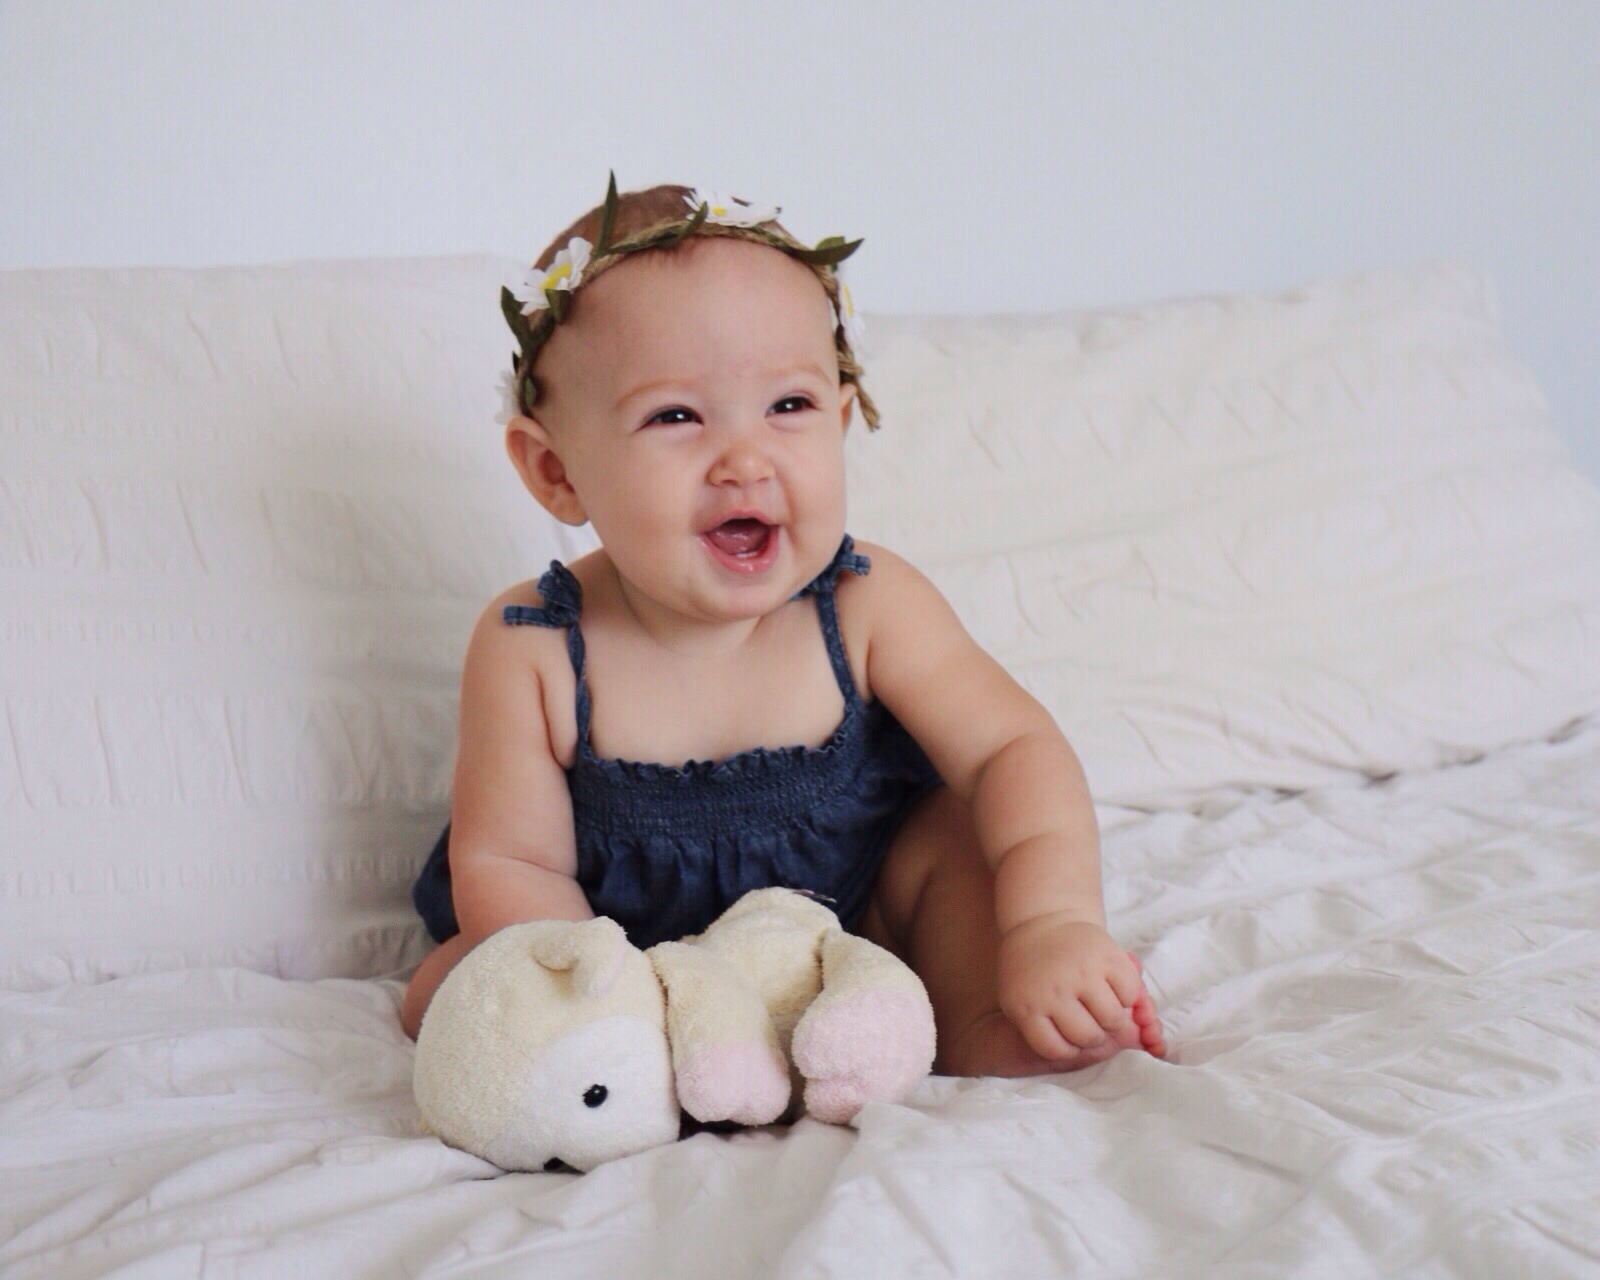 Baby Laura today. 6 months old!